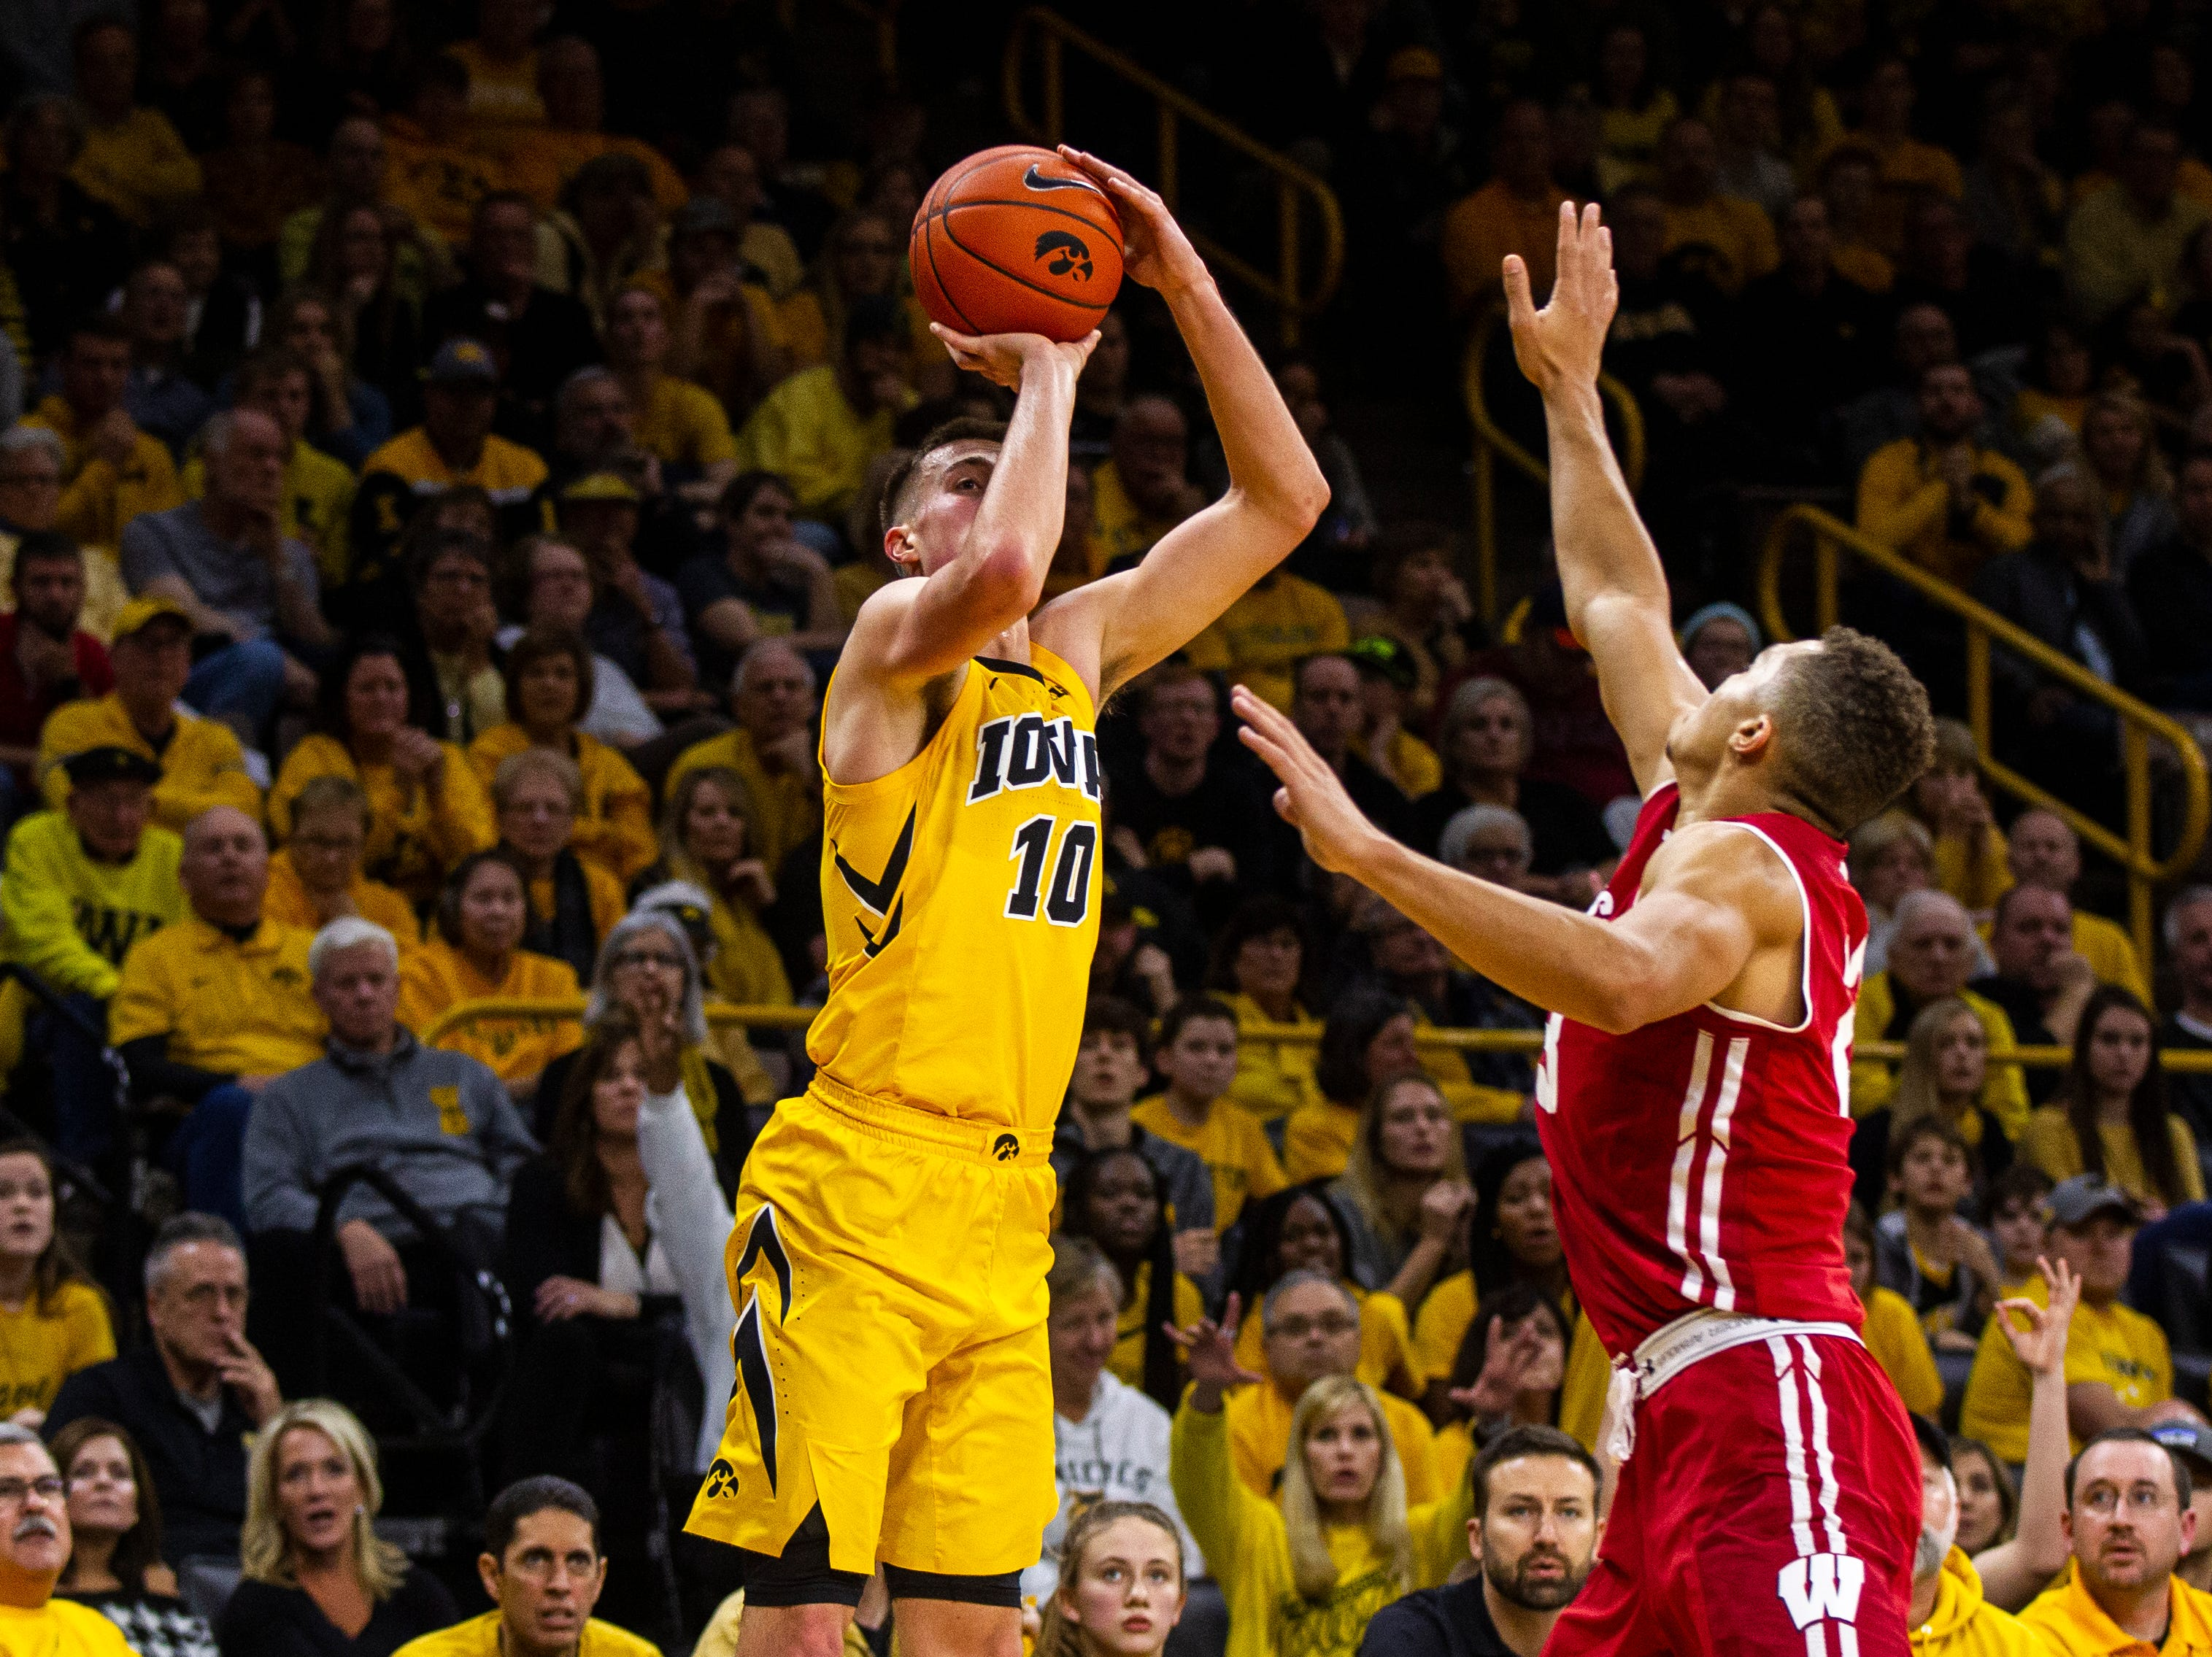 Iowa guard Joe Wieskamp (10) attempts a 3-point basket during a NCAA Big Ten Conference men's basketball game on Friday, Nov. 30, 2018, at Carver-Hawkeye Arena in Iowa City.